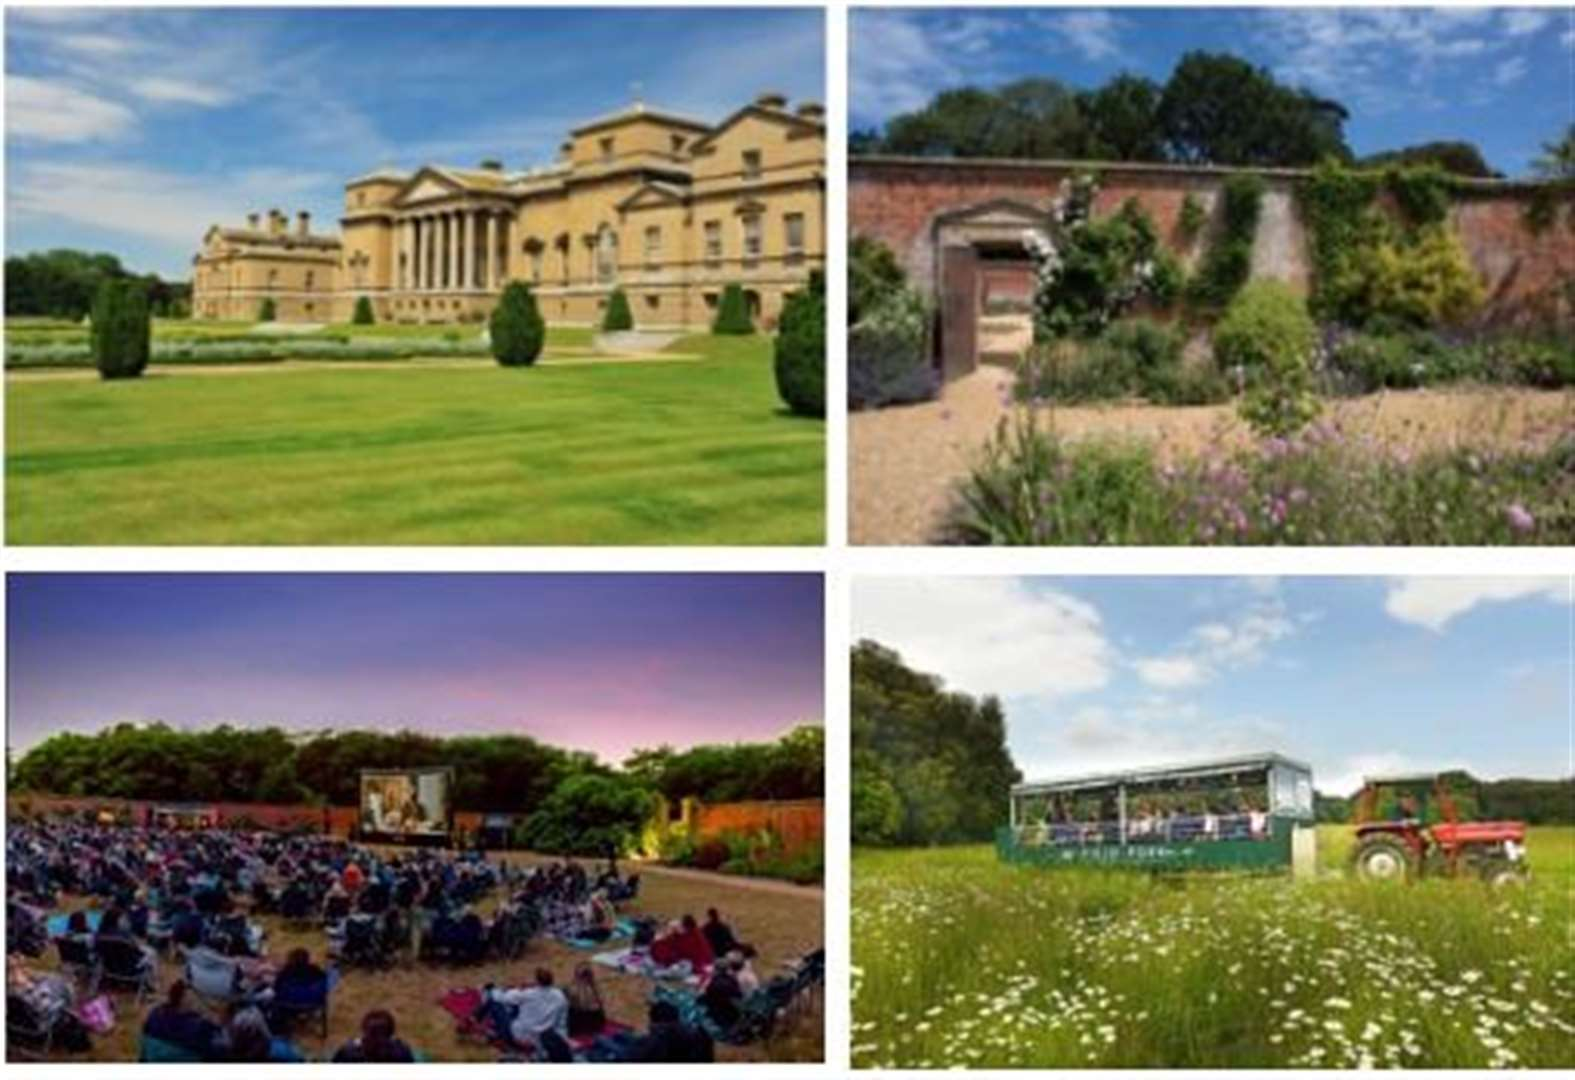 Forget the Med – try Holkham this year